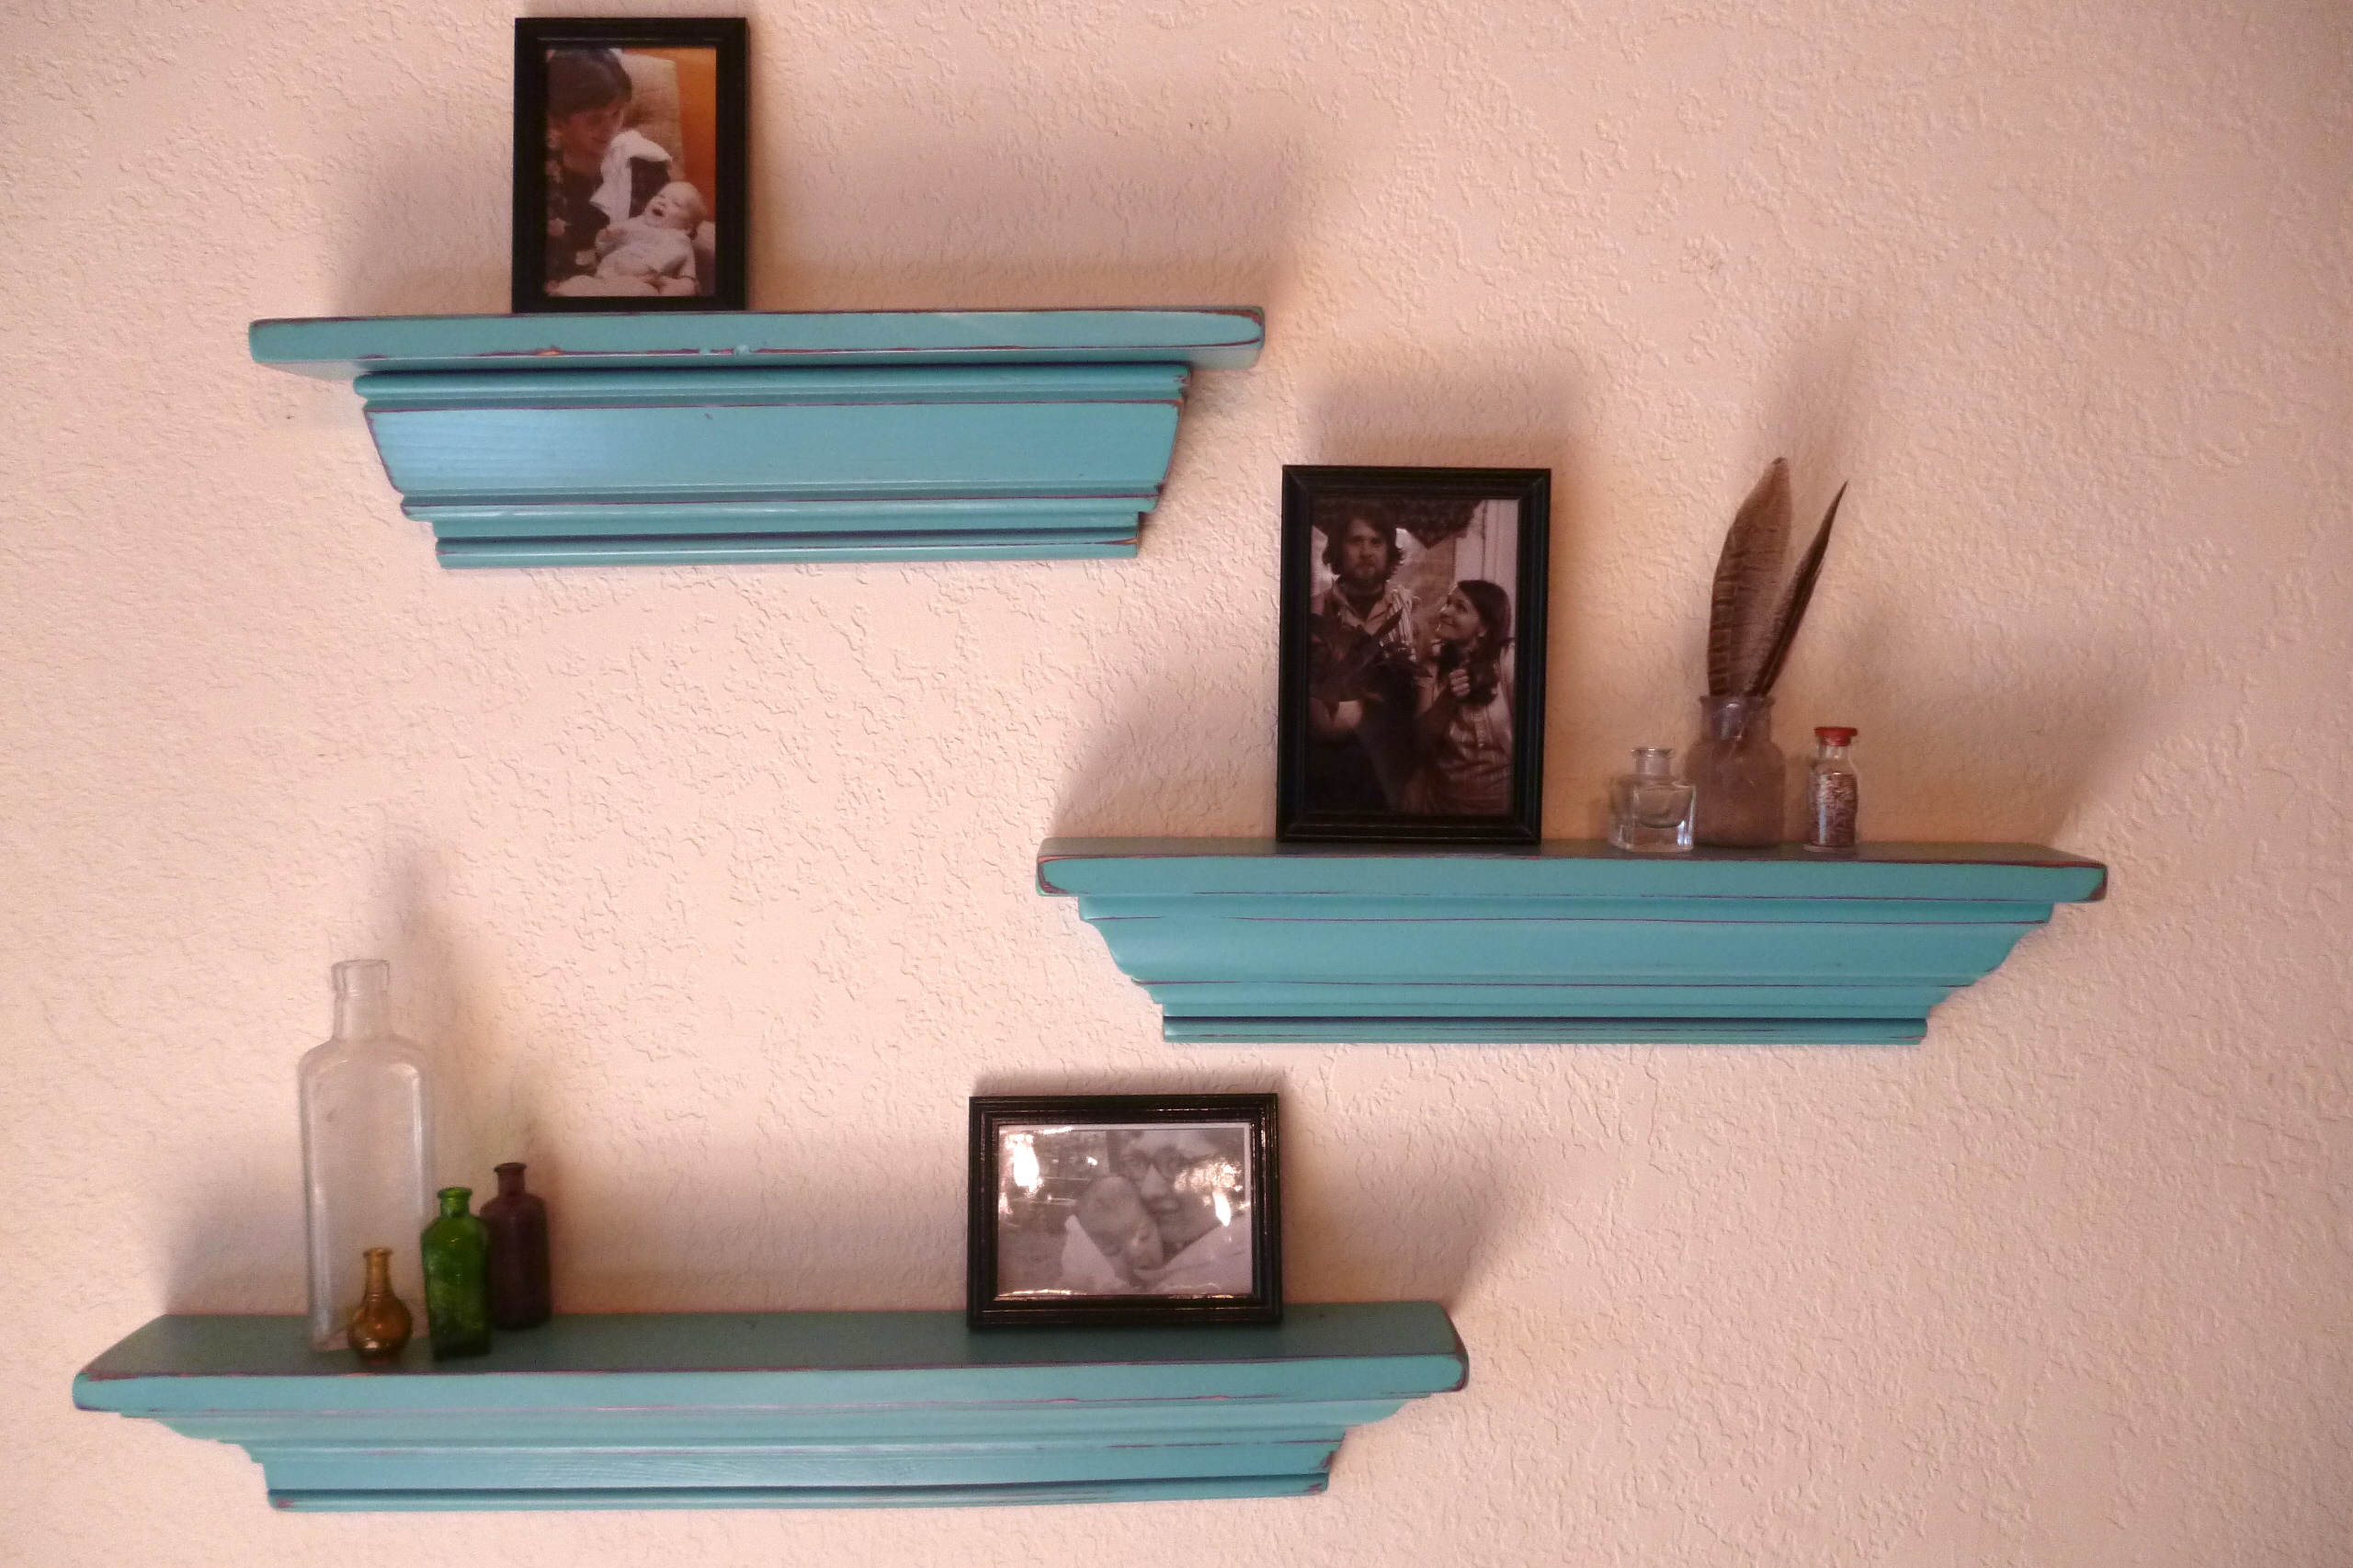 wall shelf colonial woodwrights rh colonialwoodwrights wordpress com wall shelves and ledges ikea wall shelves and ledges ideas